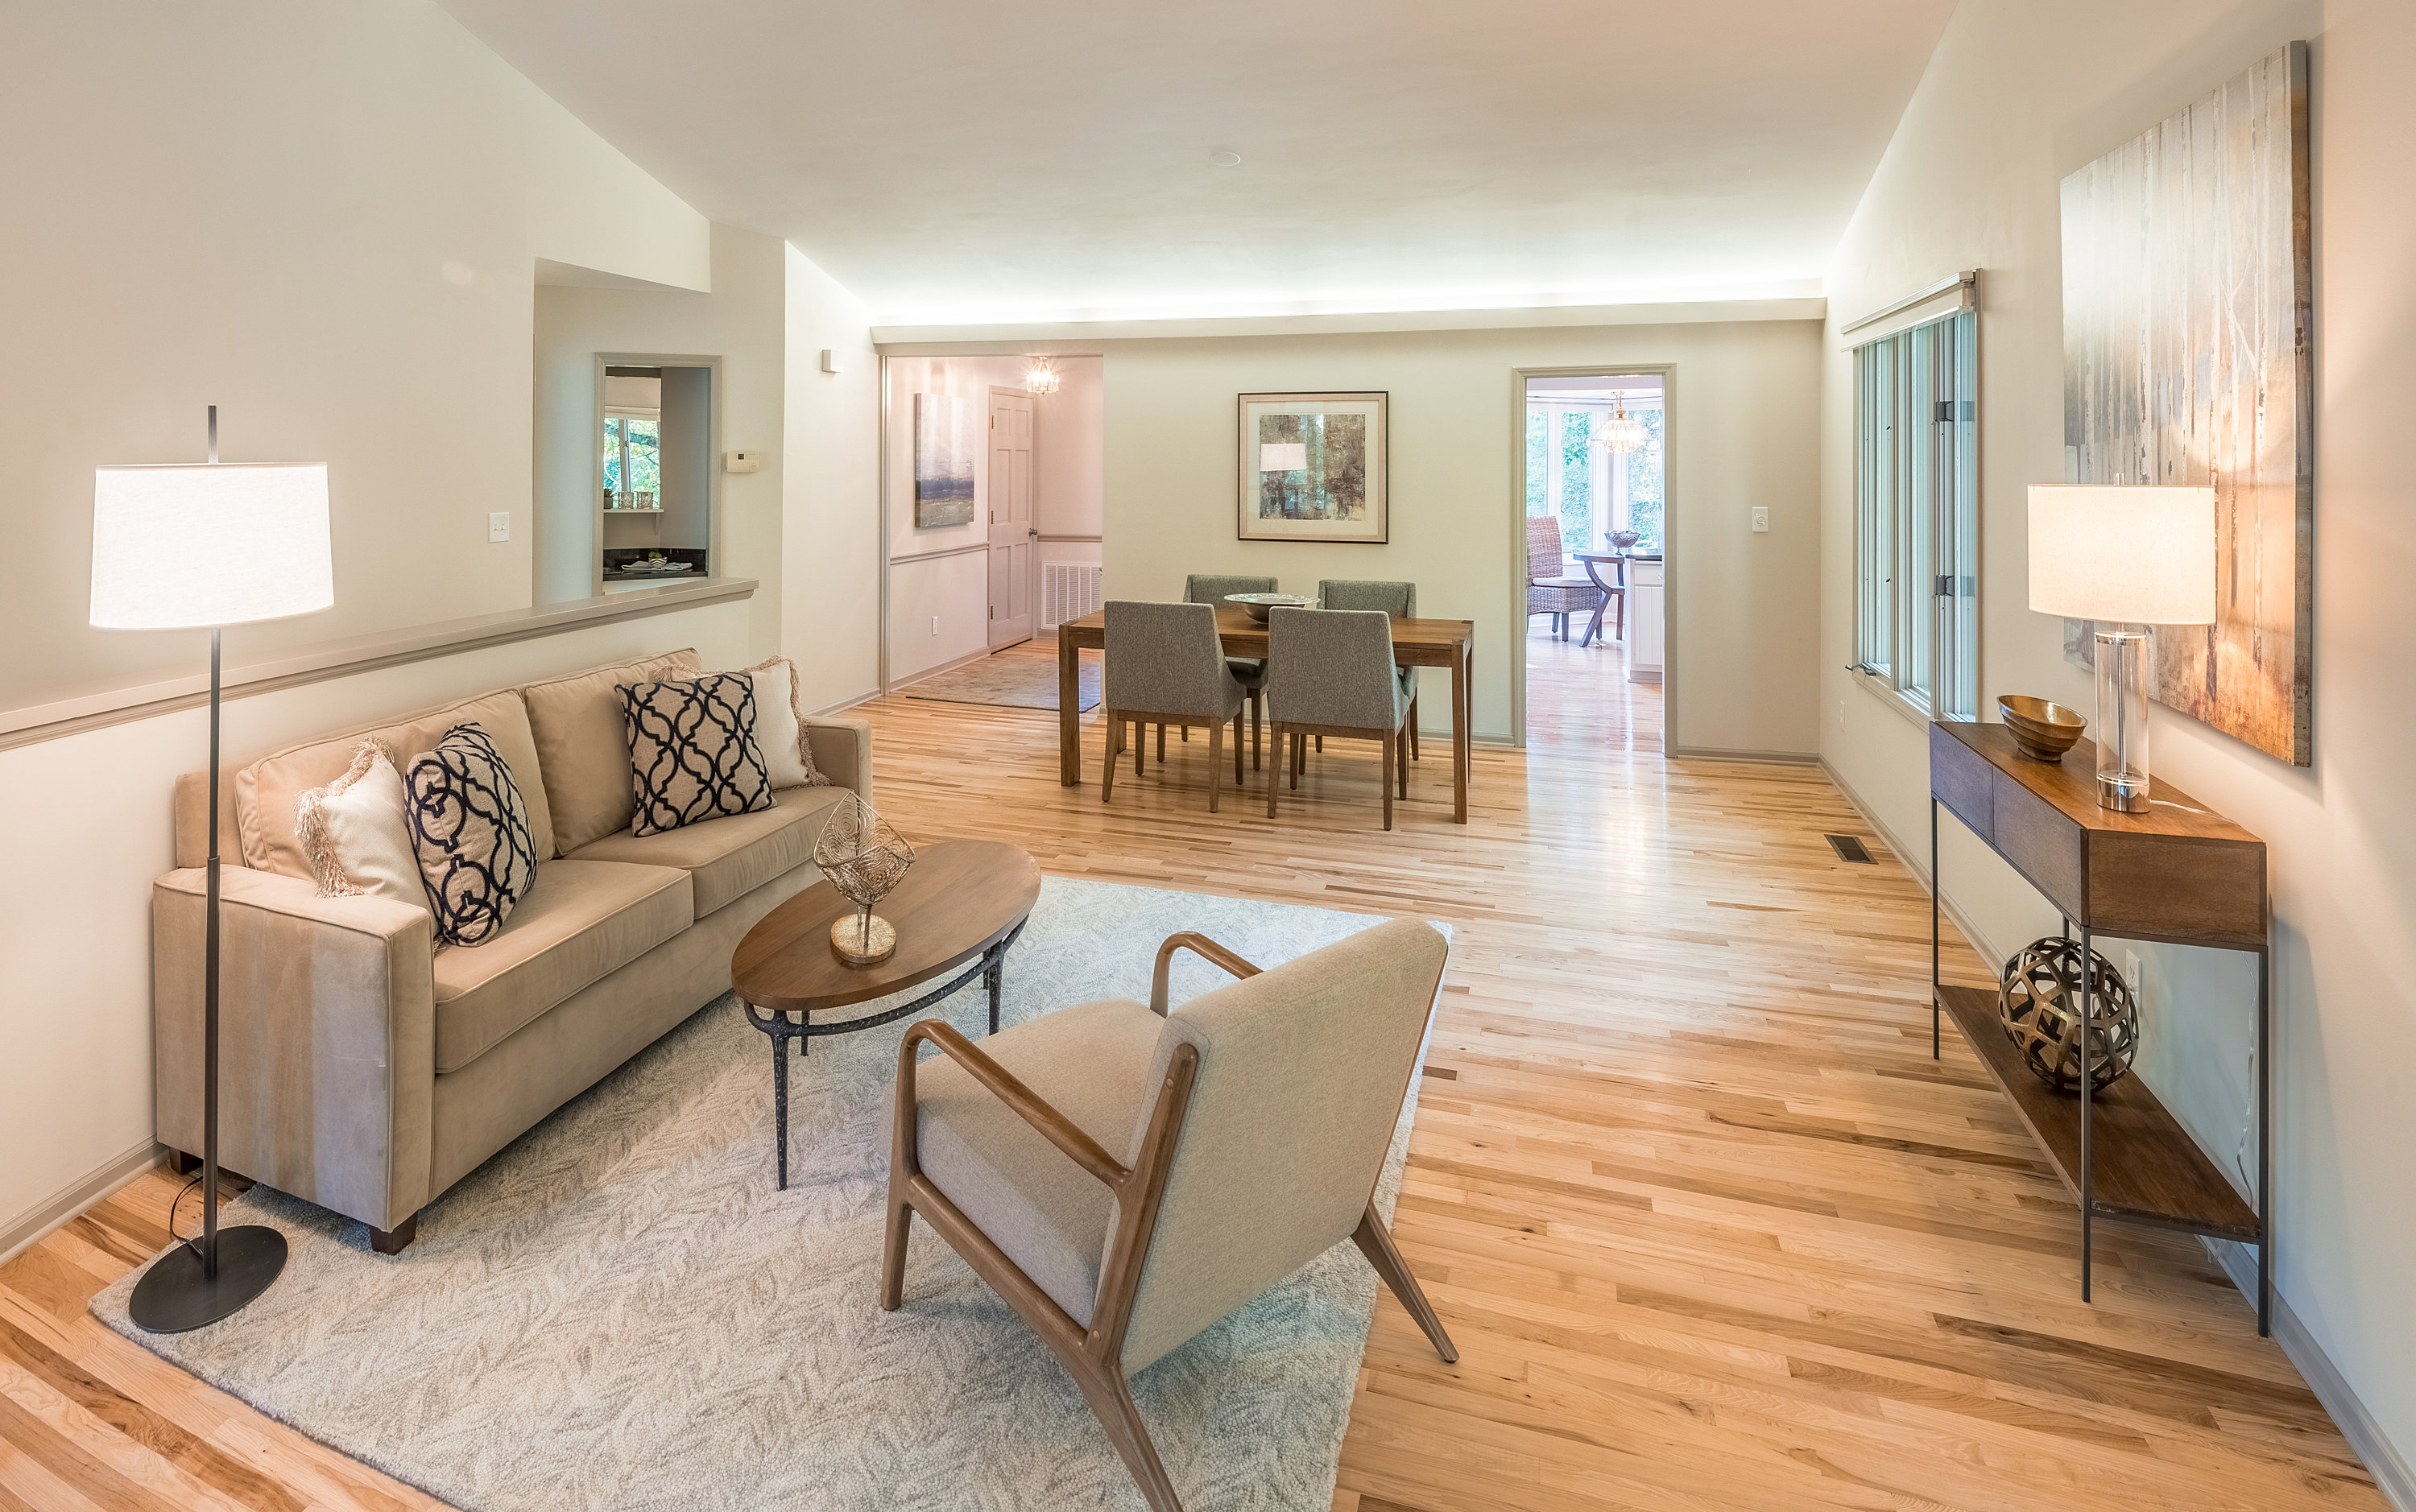 Home Staging Services and Interior Design | Home Staging: Living Room